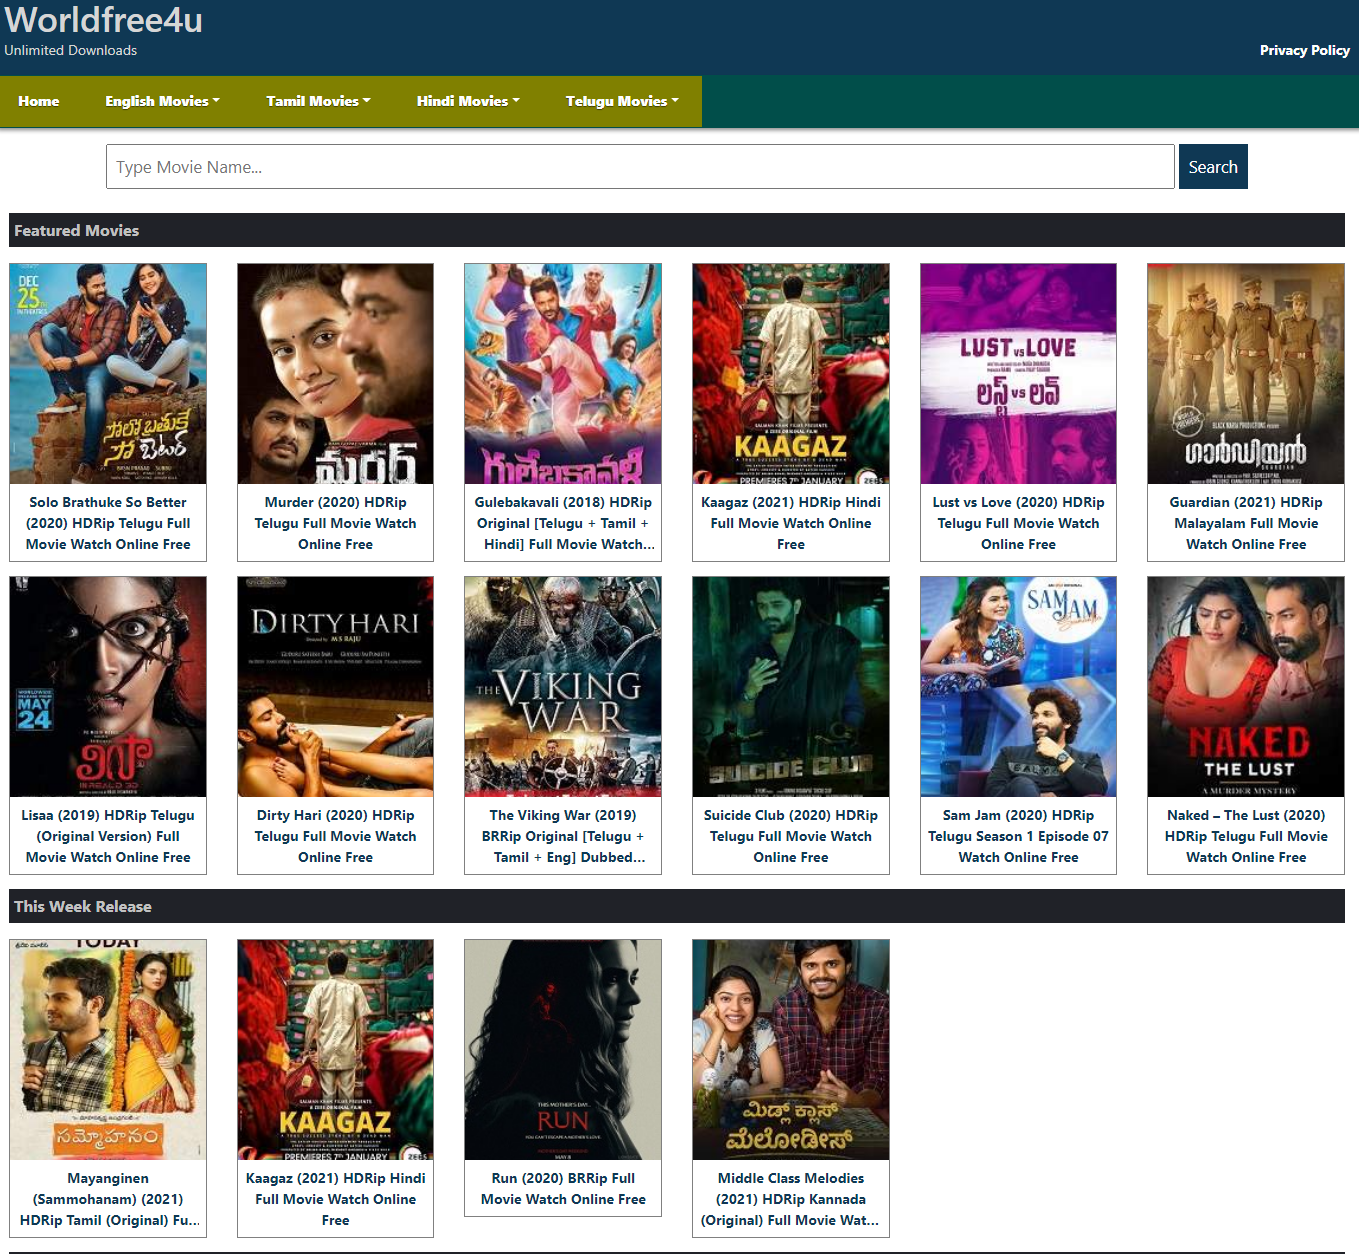 Worldfree4u 2021 - [Piracy Website] Live Link Trade Movies worldfree4u. Lon Bollywood .com Proxy 300mbmovies4u.in- Worldfree4u- 300mb Movies 700mb Bollywood Movies, News About Worldfree4u torrent